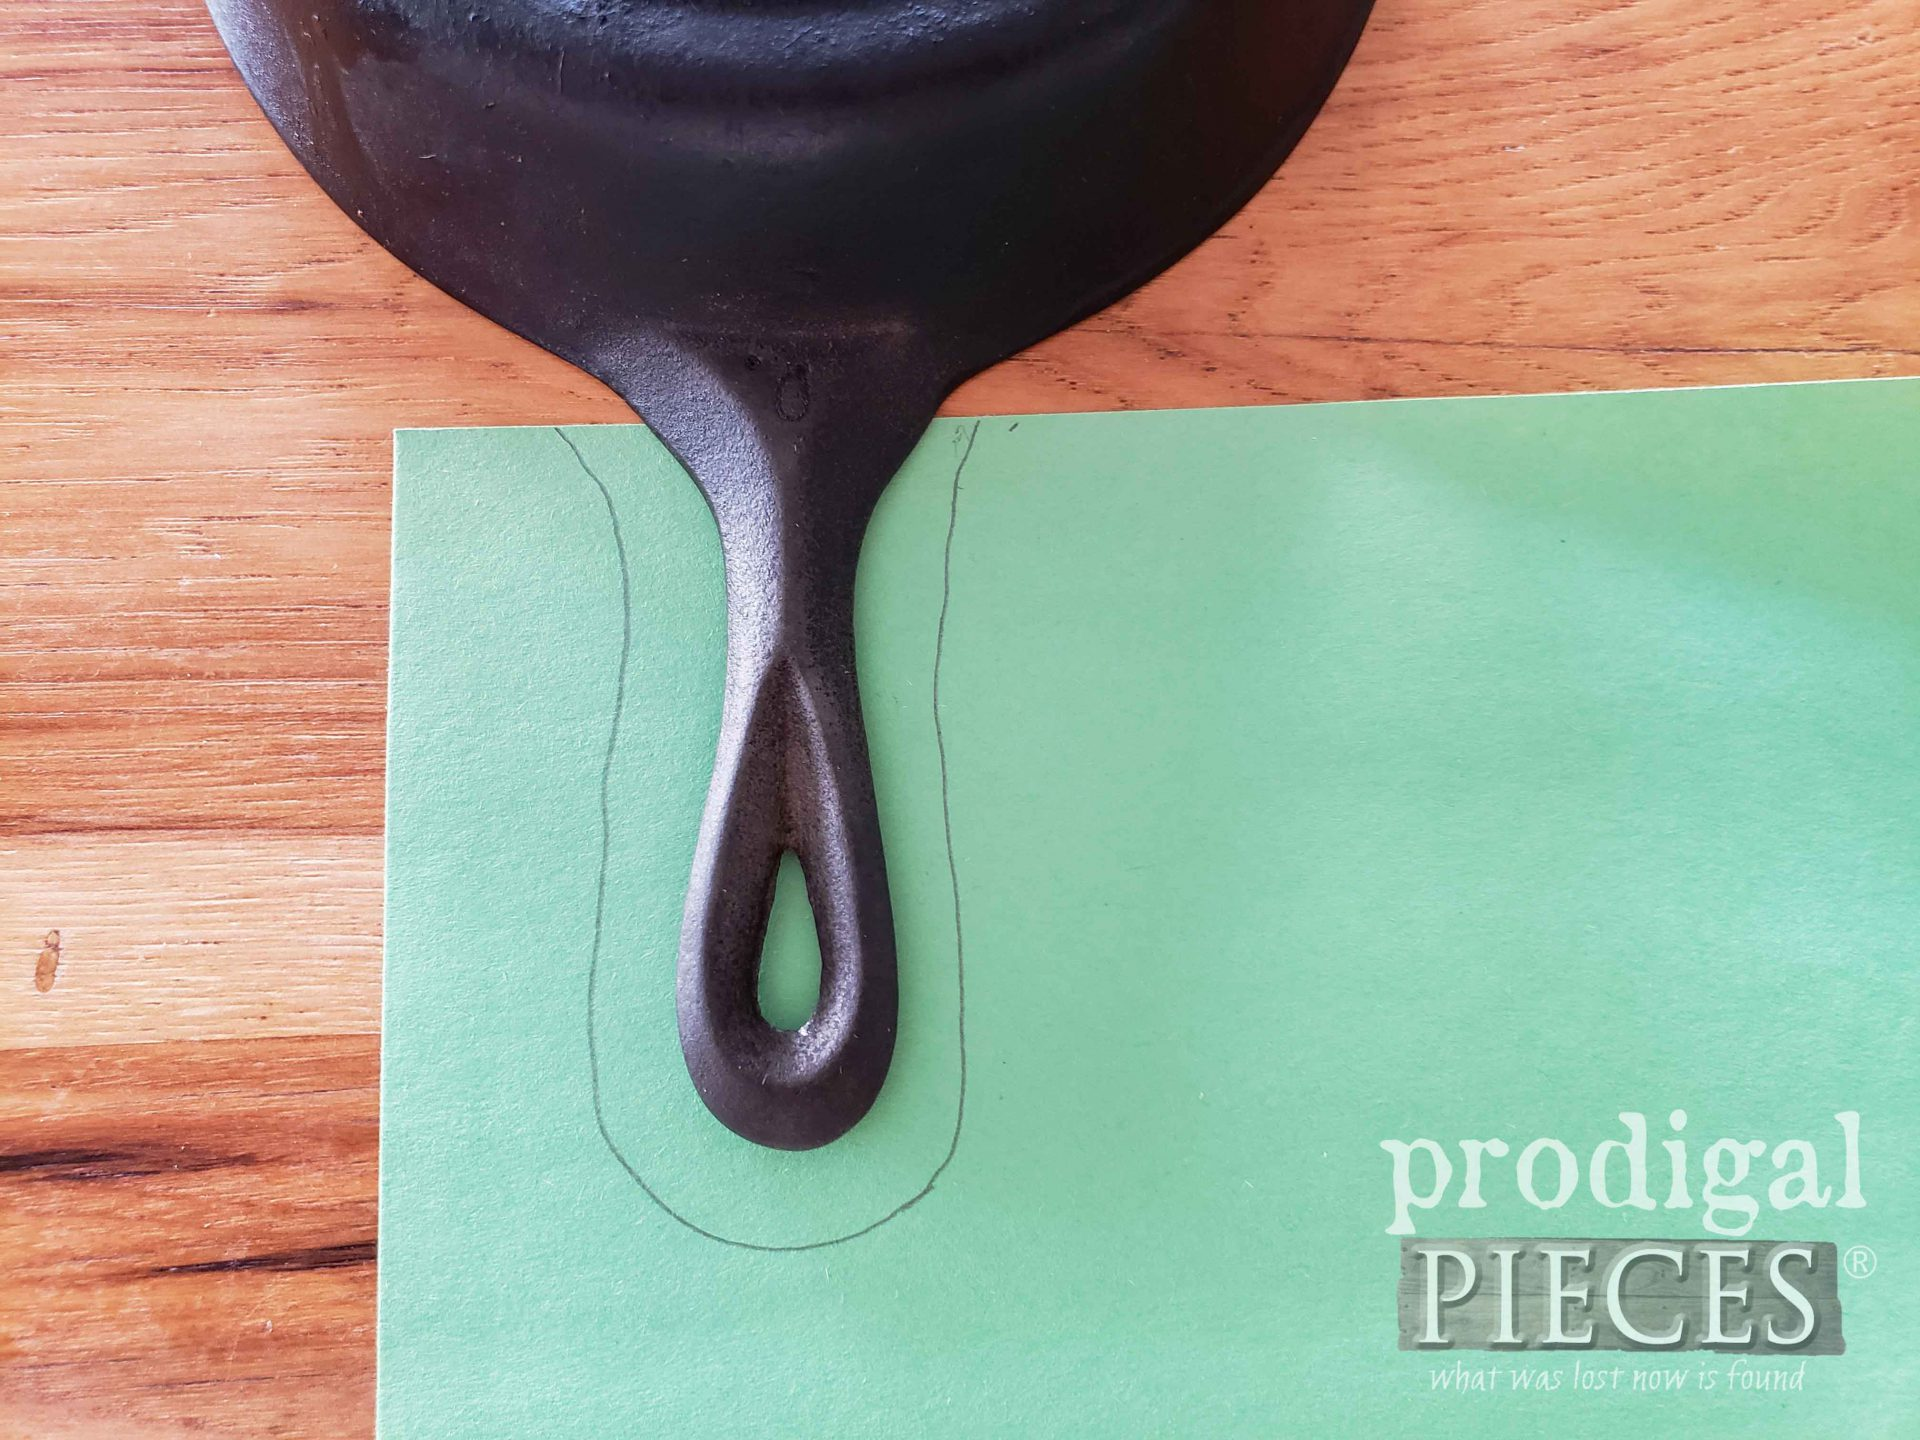 Tracing Cast Iron Skillet for Upcycled Leather Pot Holder | prodigalpieces.com